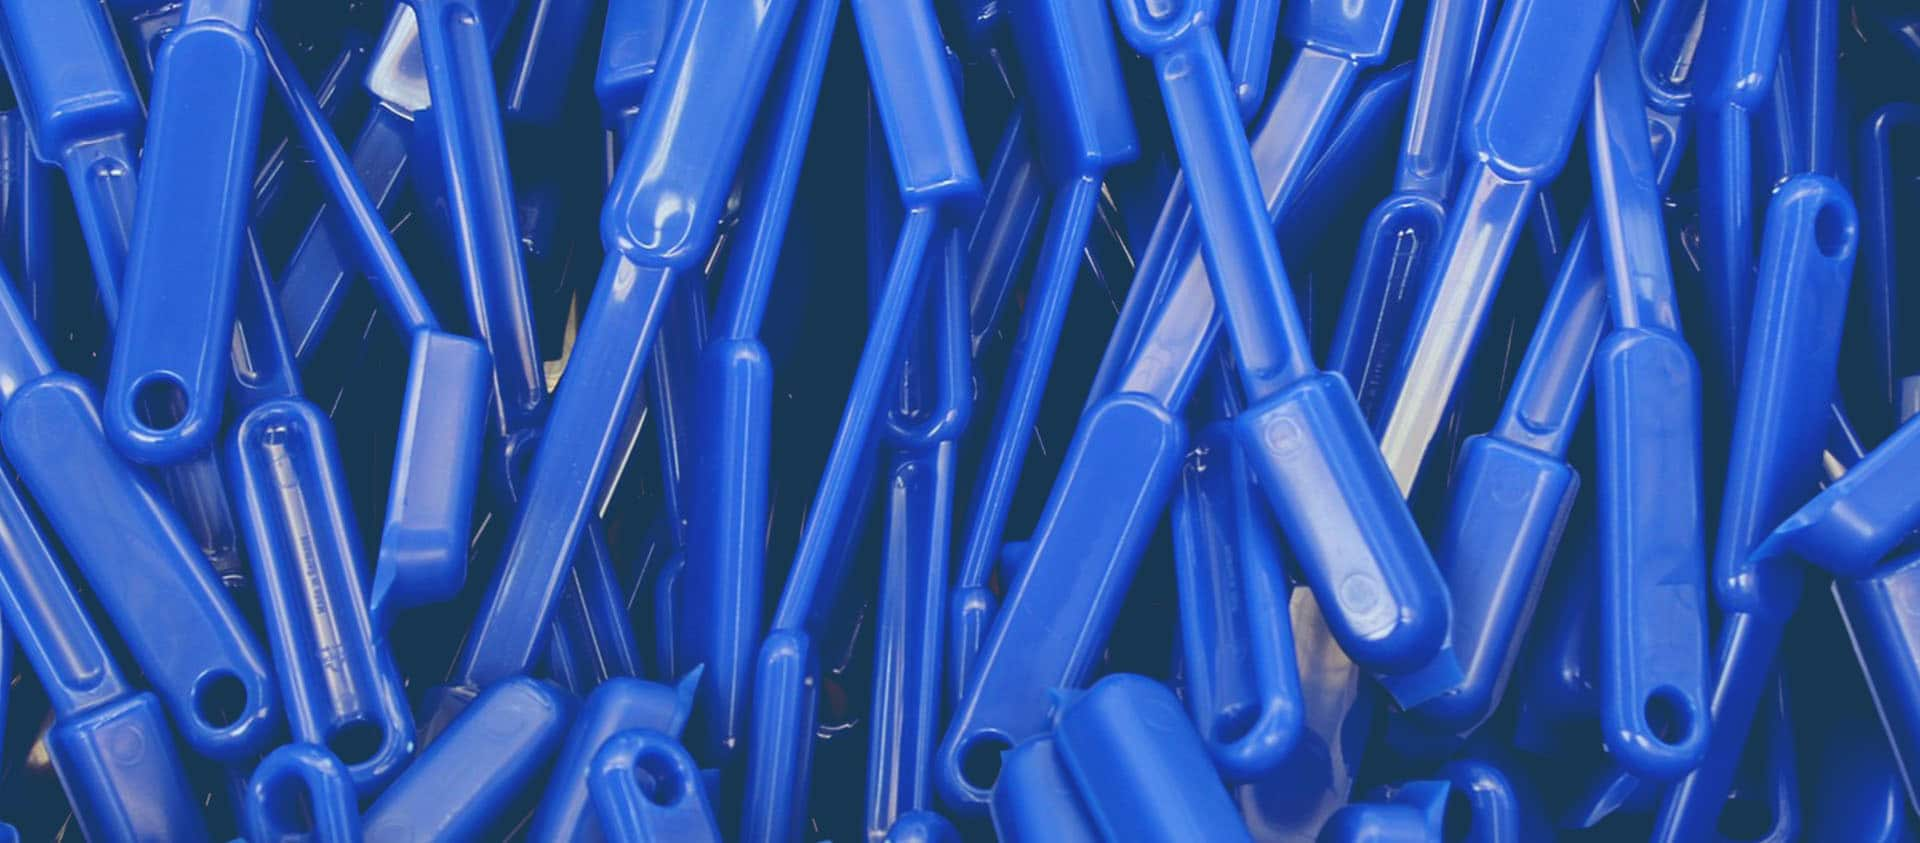 Manufacturing plastic products from recycled plastic